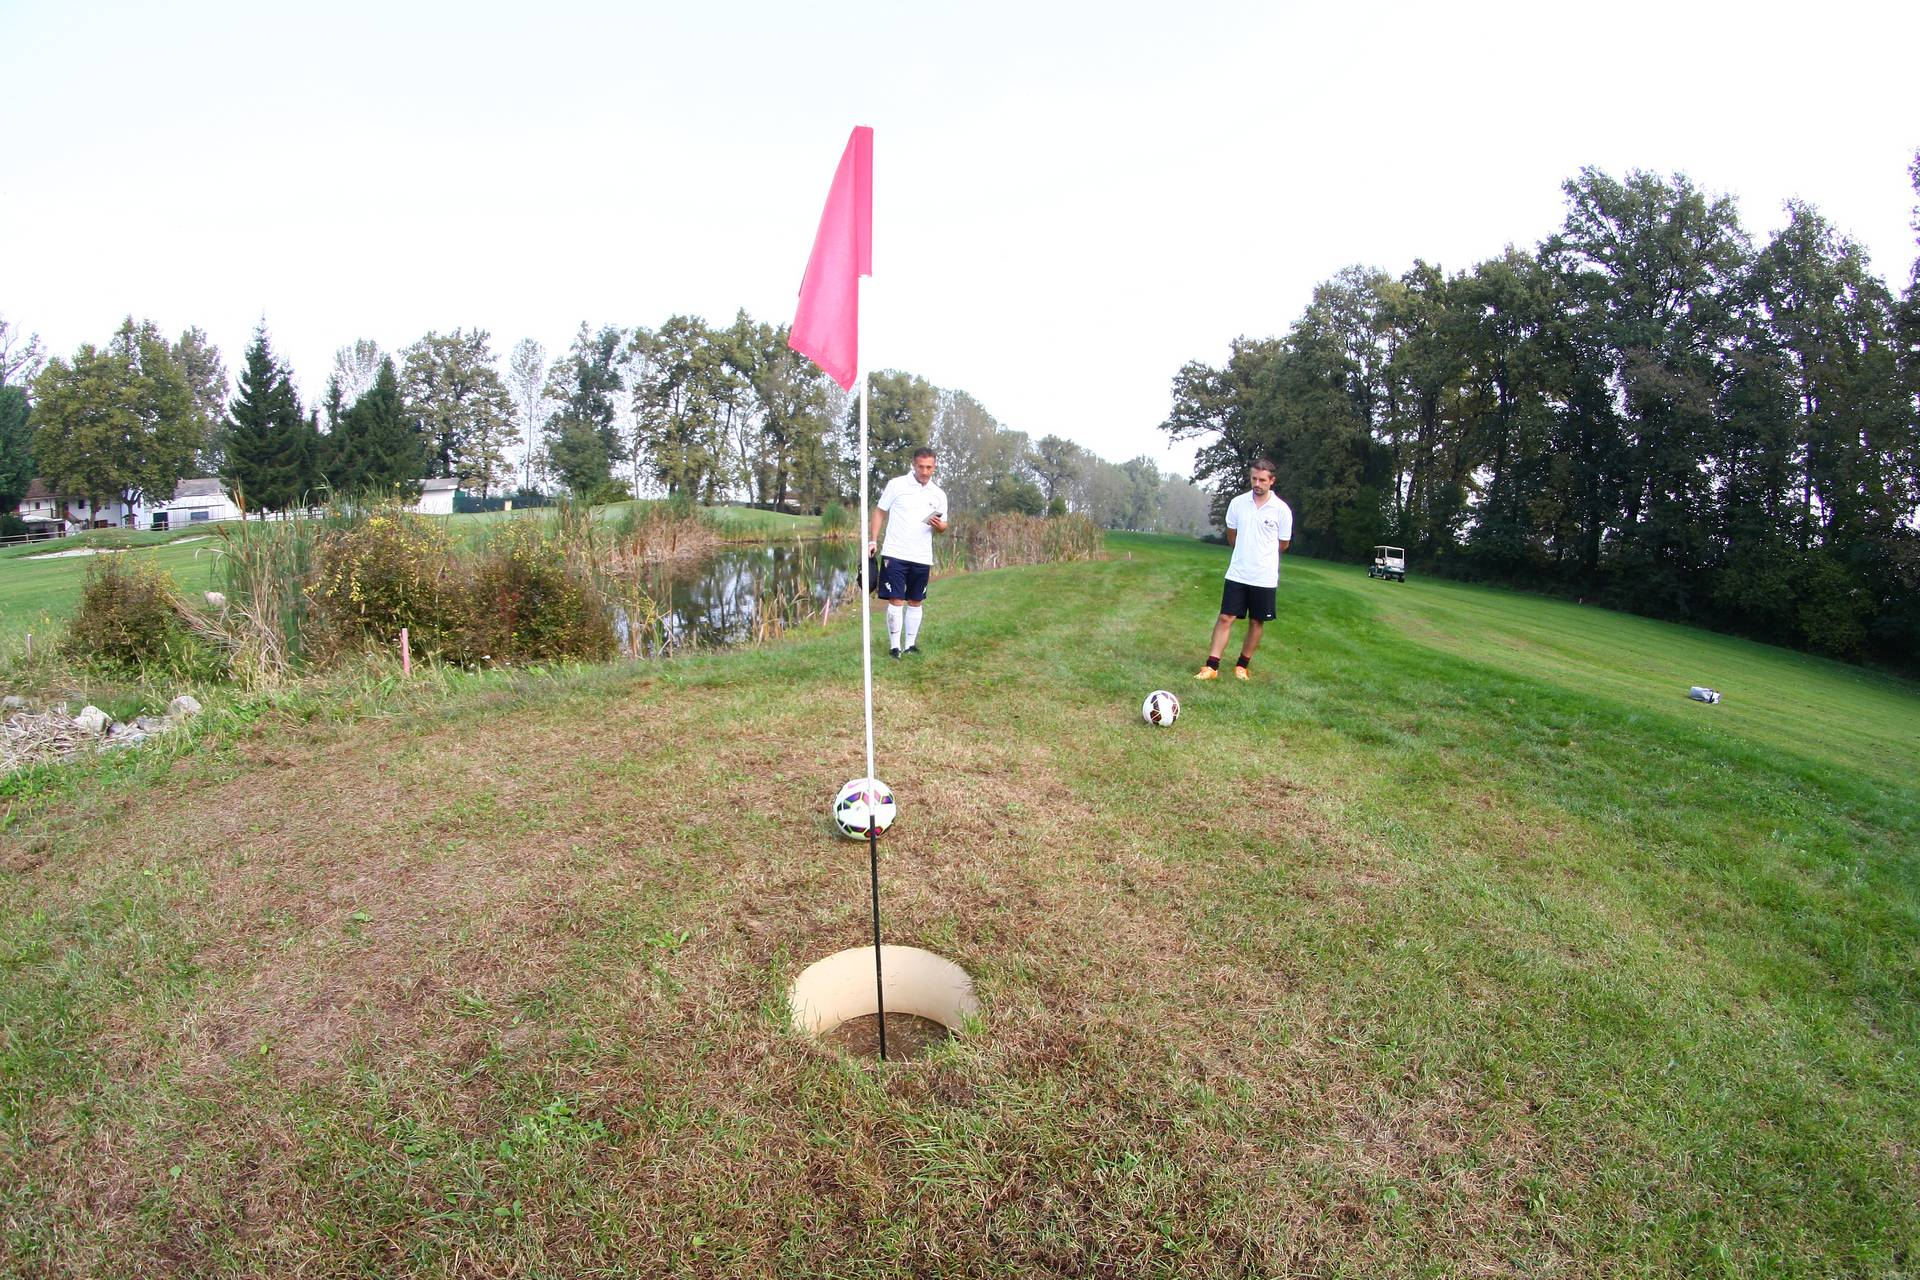 Il footgolf è fantasia…